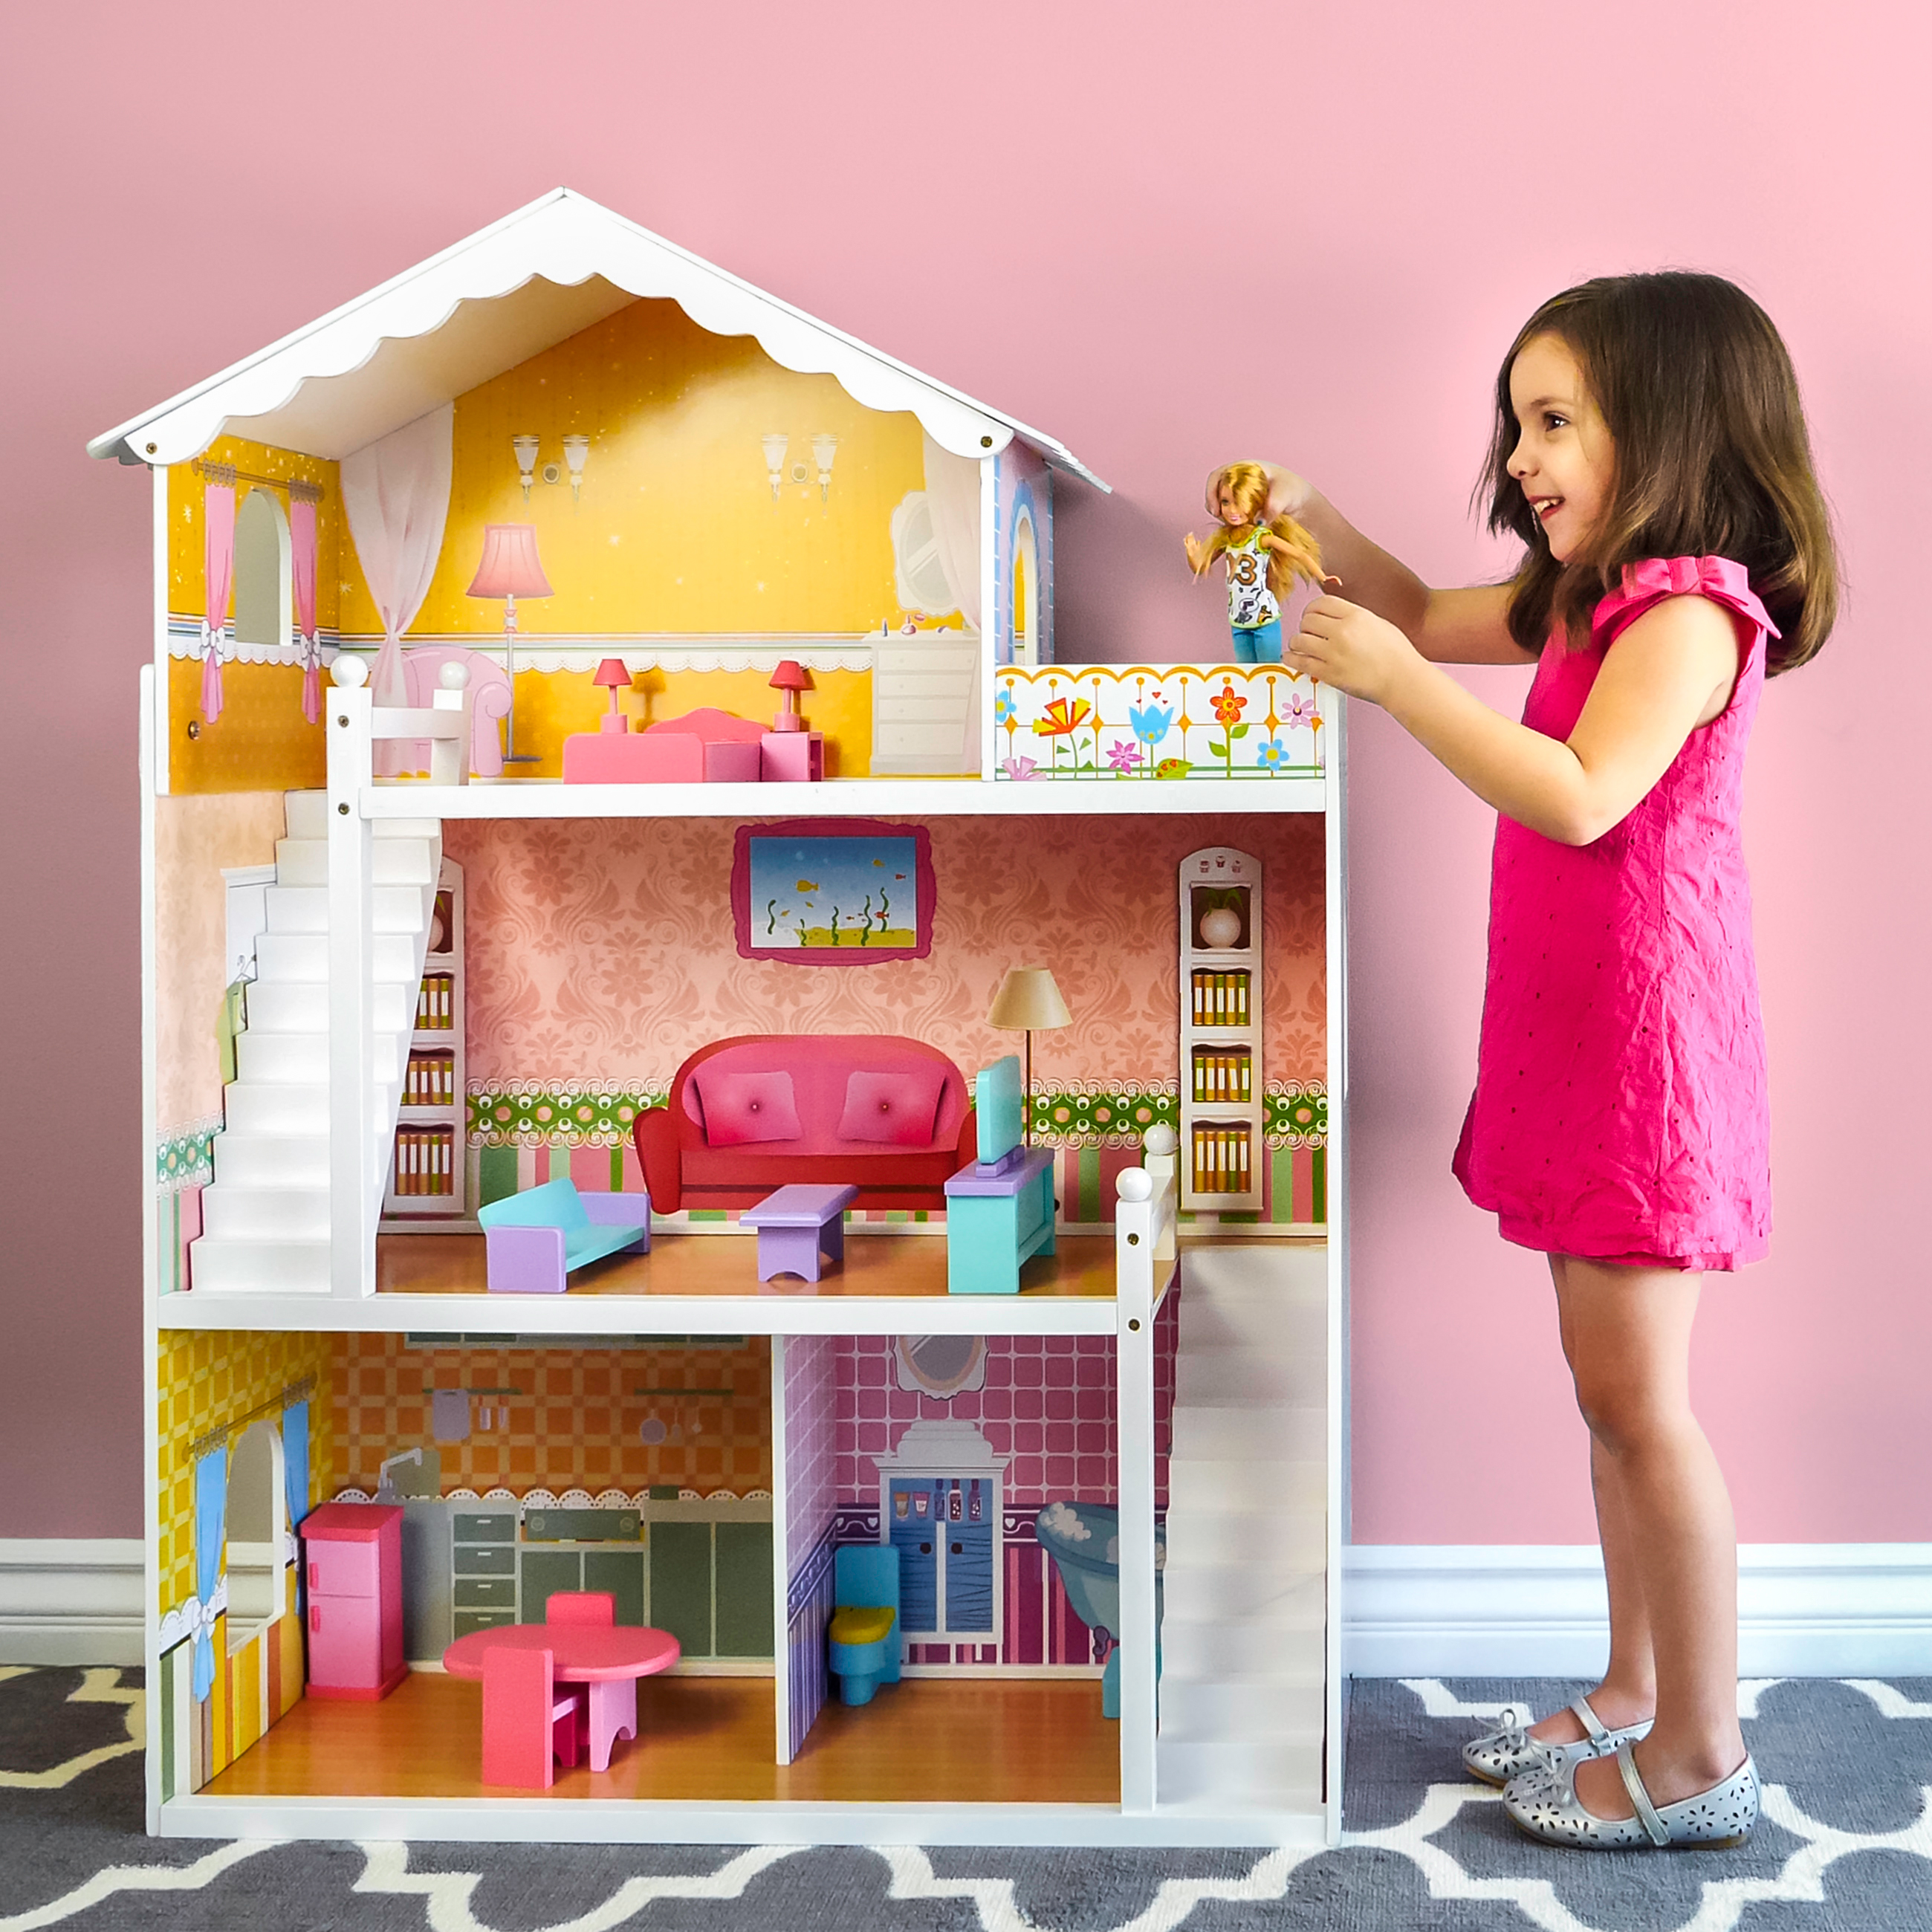 Best Choice Products Large Childrens Wooden Dollhouse Fits Barbie Doll House Pink w/ 17 Pieces of Furniture